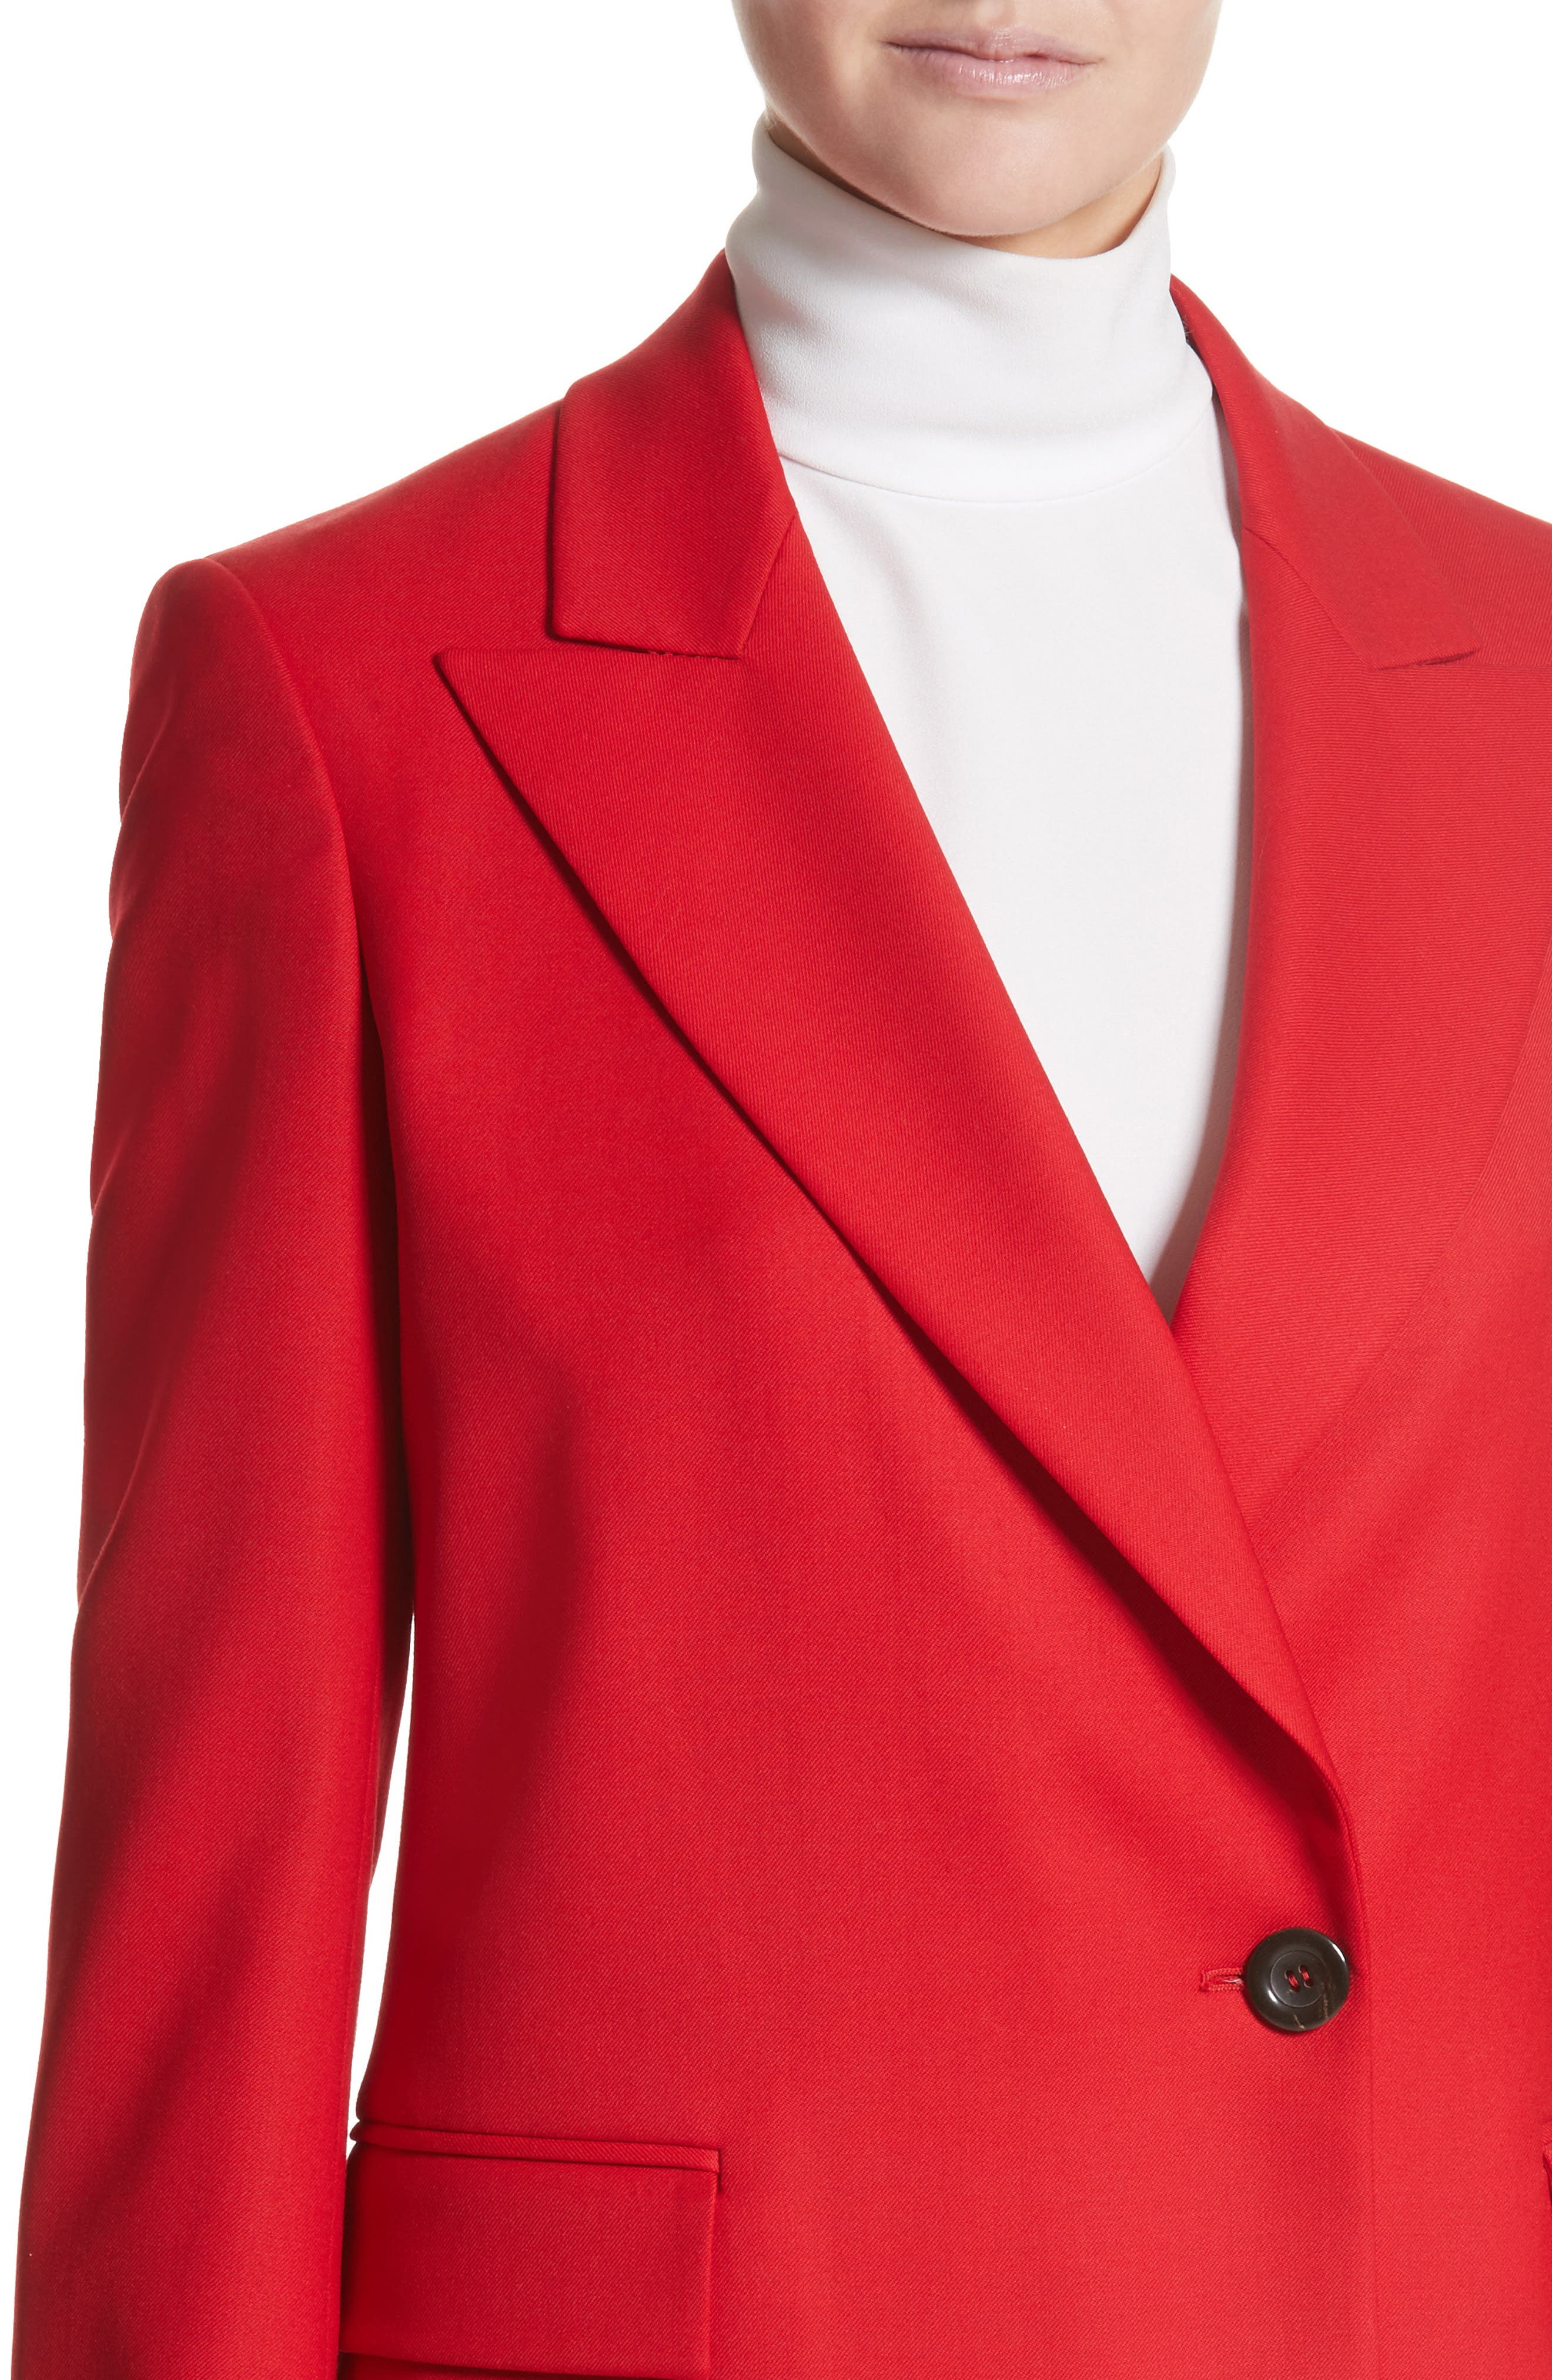 Stretch Wool Blazer,                             Alternate thumbnail 6, color,                             Red